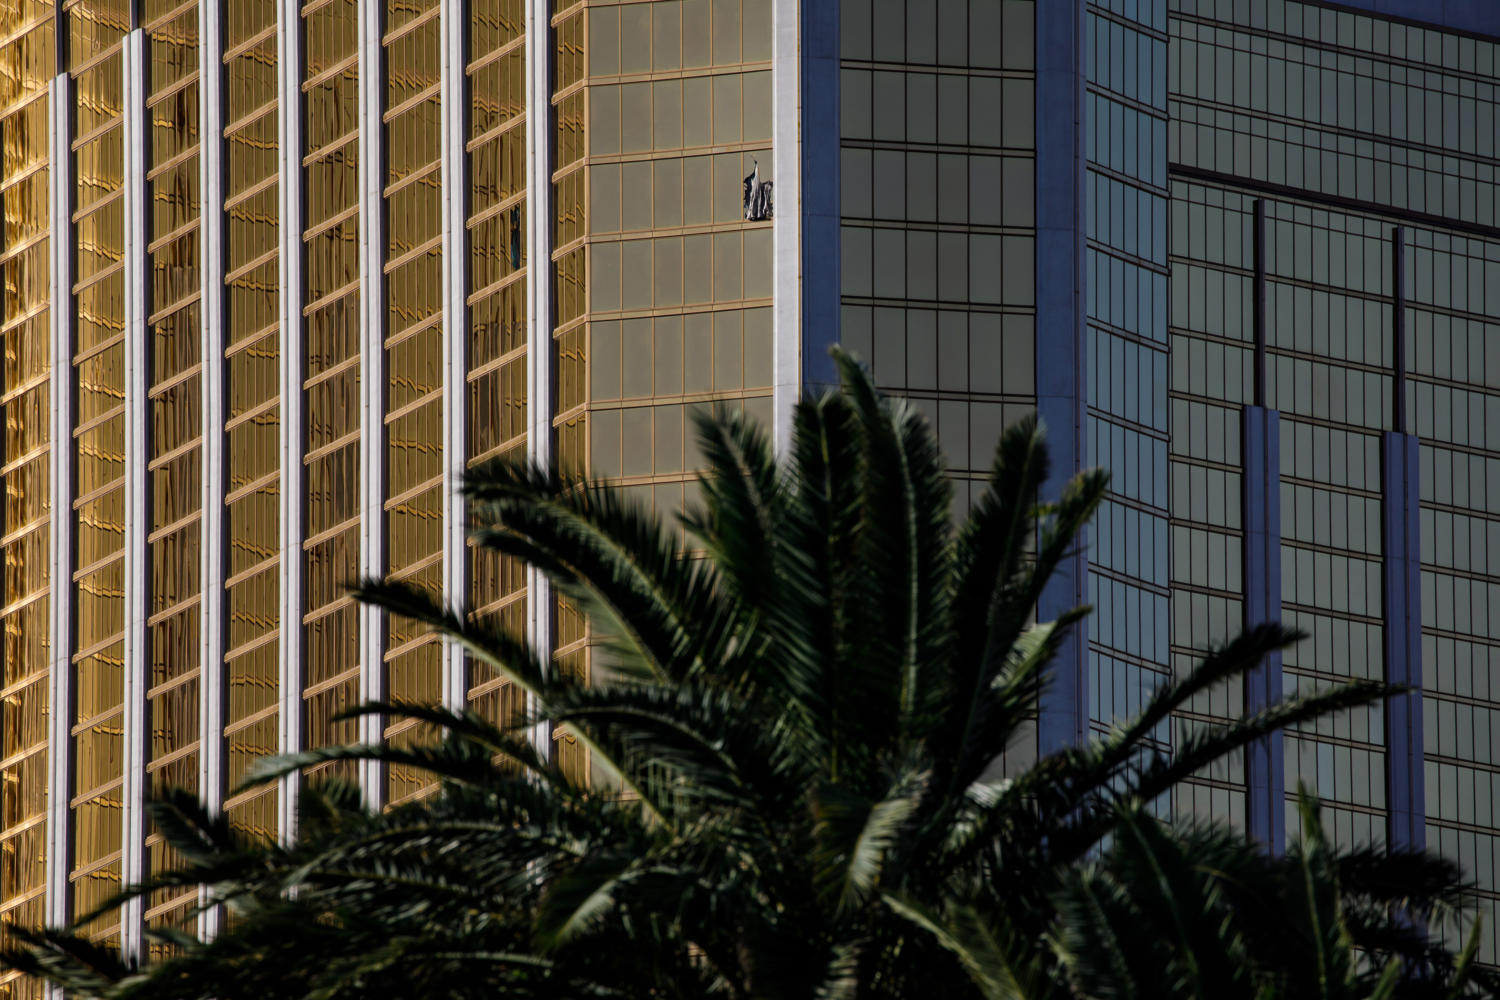 A curtain blows out of a broken window where a gunman opened fire from an upper story of Mandalay Bay resort on a country music festival across the street on the Las Vegas Strip on Sunday night, leaving at least 58 dead and more than 500 injured,  in Las Vegas, Nevada, on Oct. 2, 2017. (Marcus Yam/Los Angeles Times/TNS)